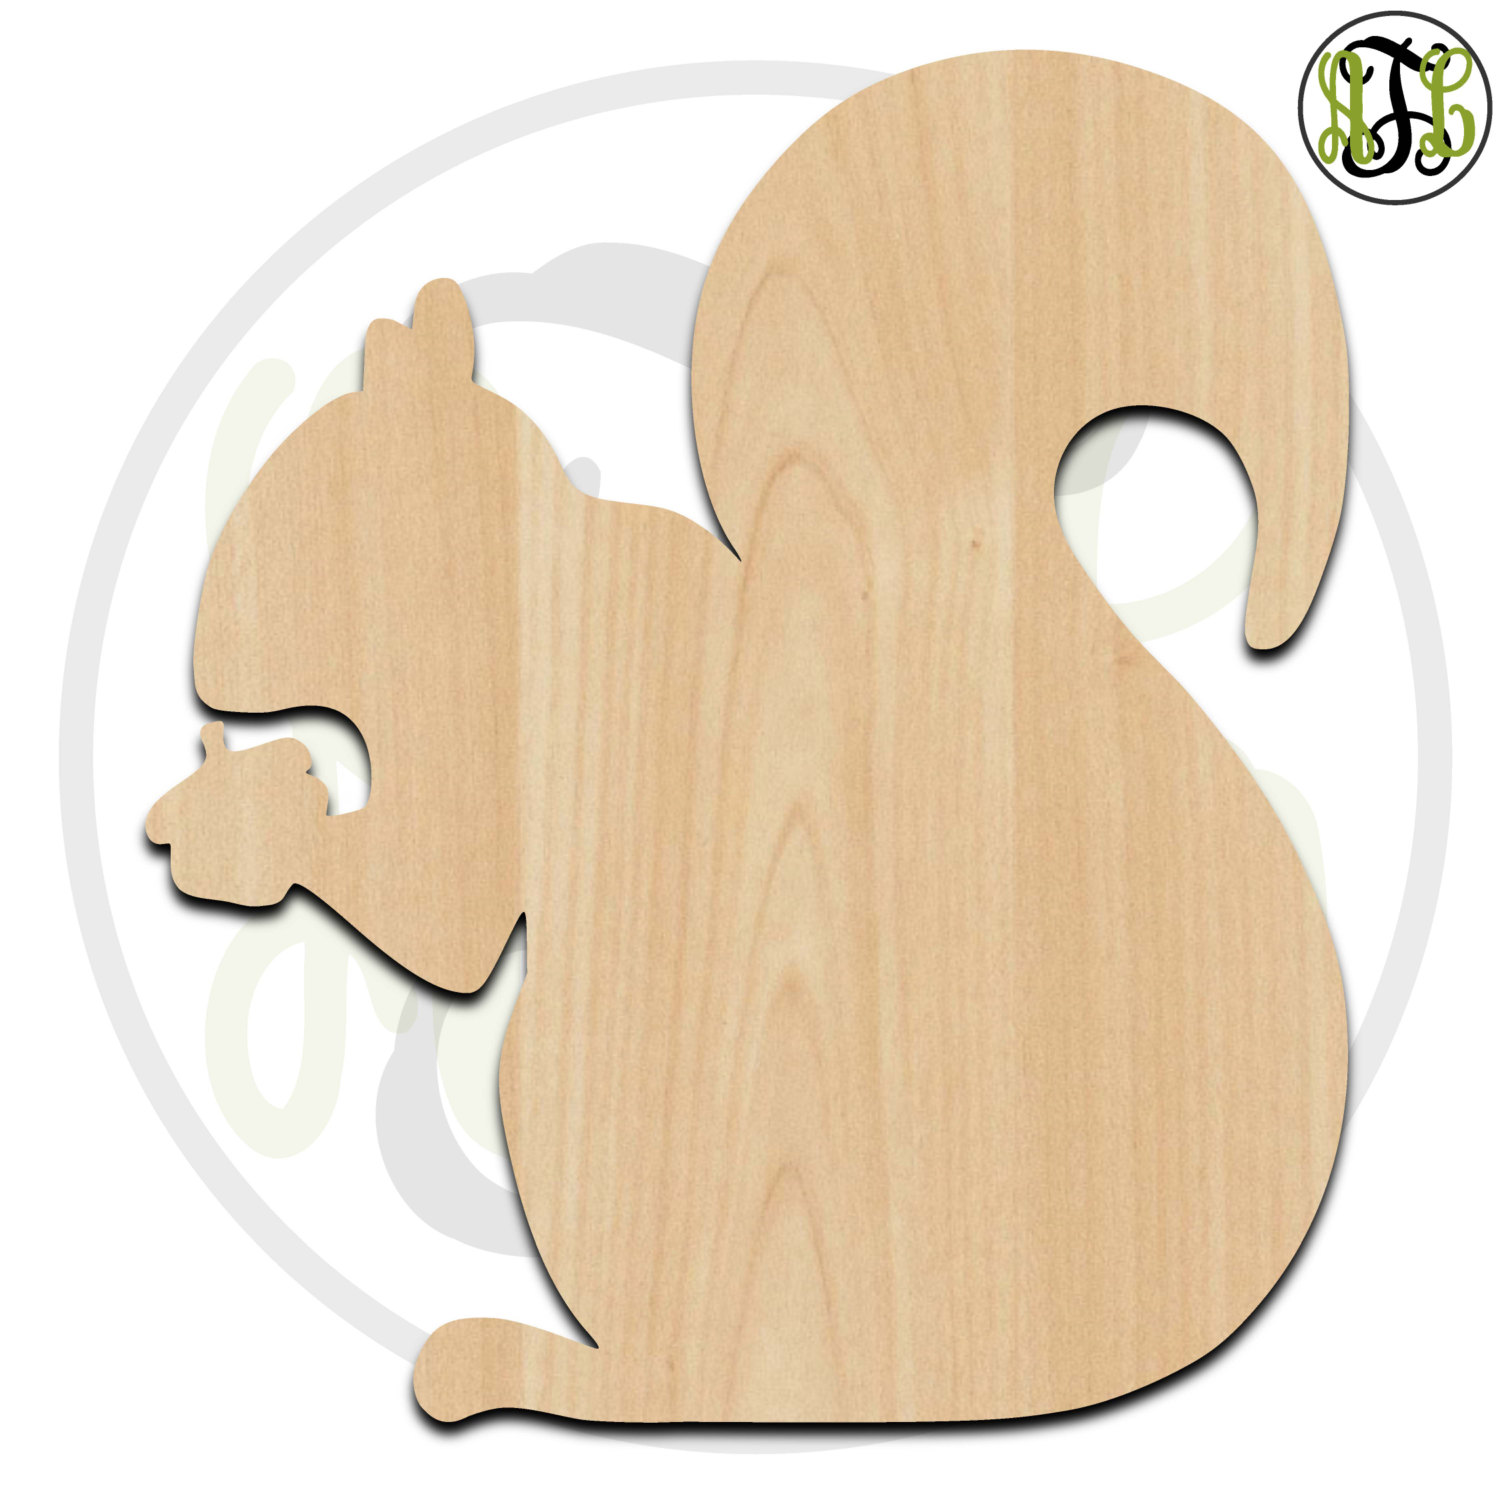 Squirrel with Nut- 220009- Cutout, unfinished, wood cutout, wood ...